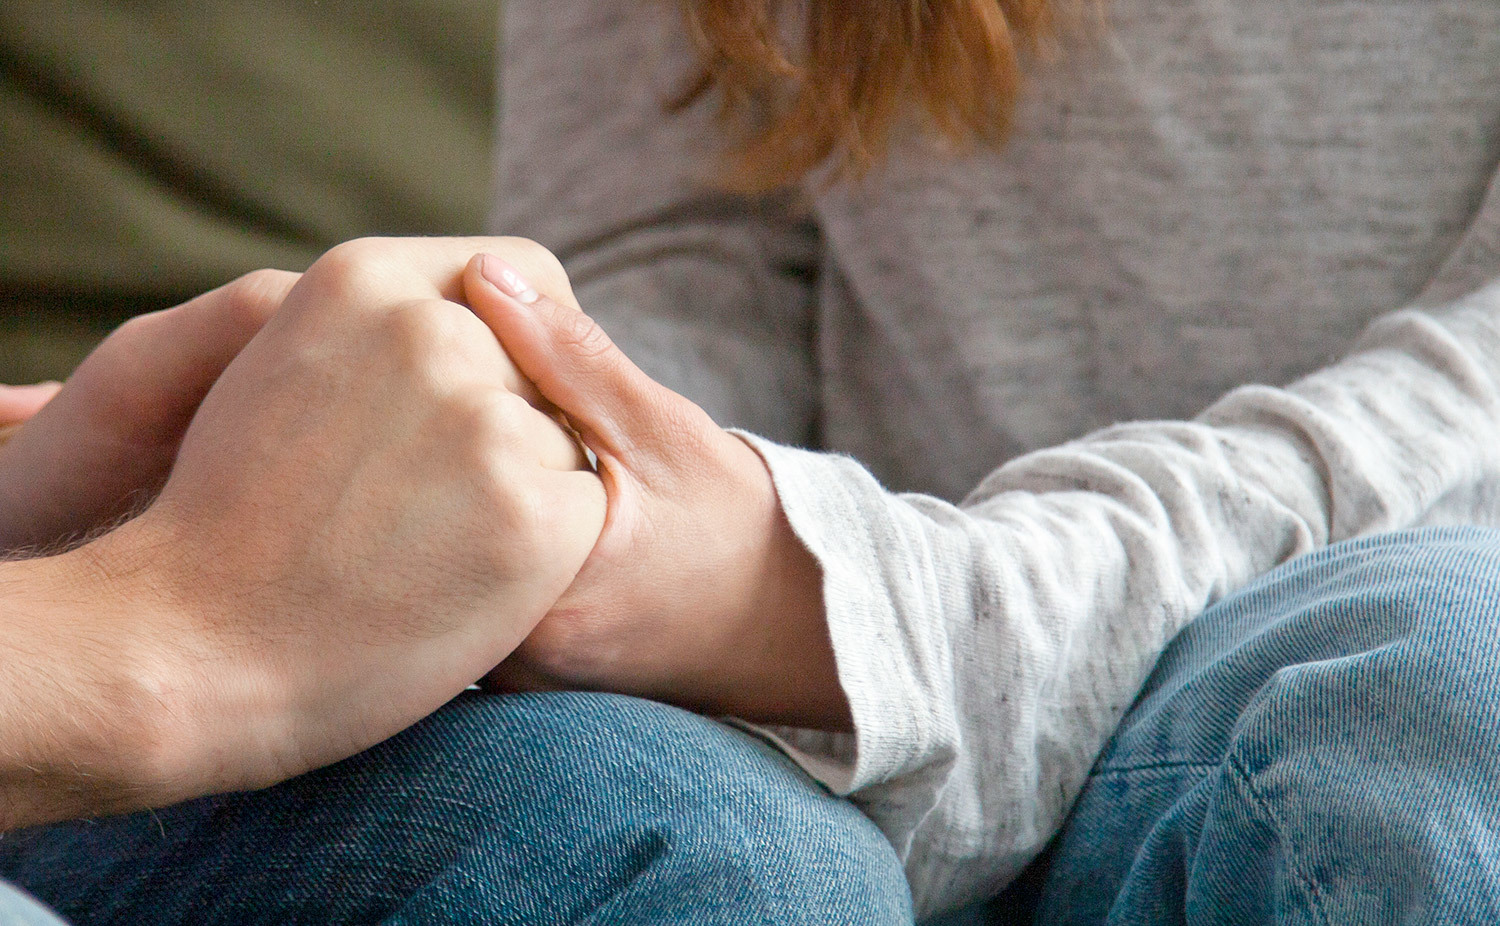 Showing compassion in your adoption